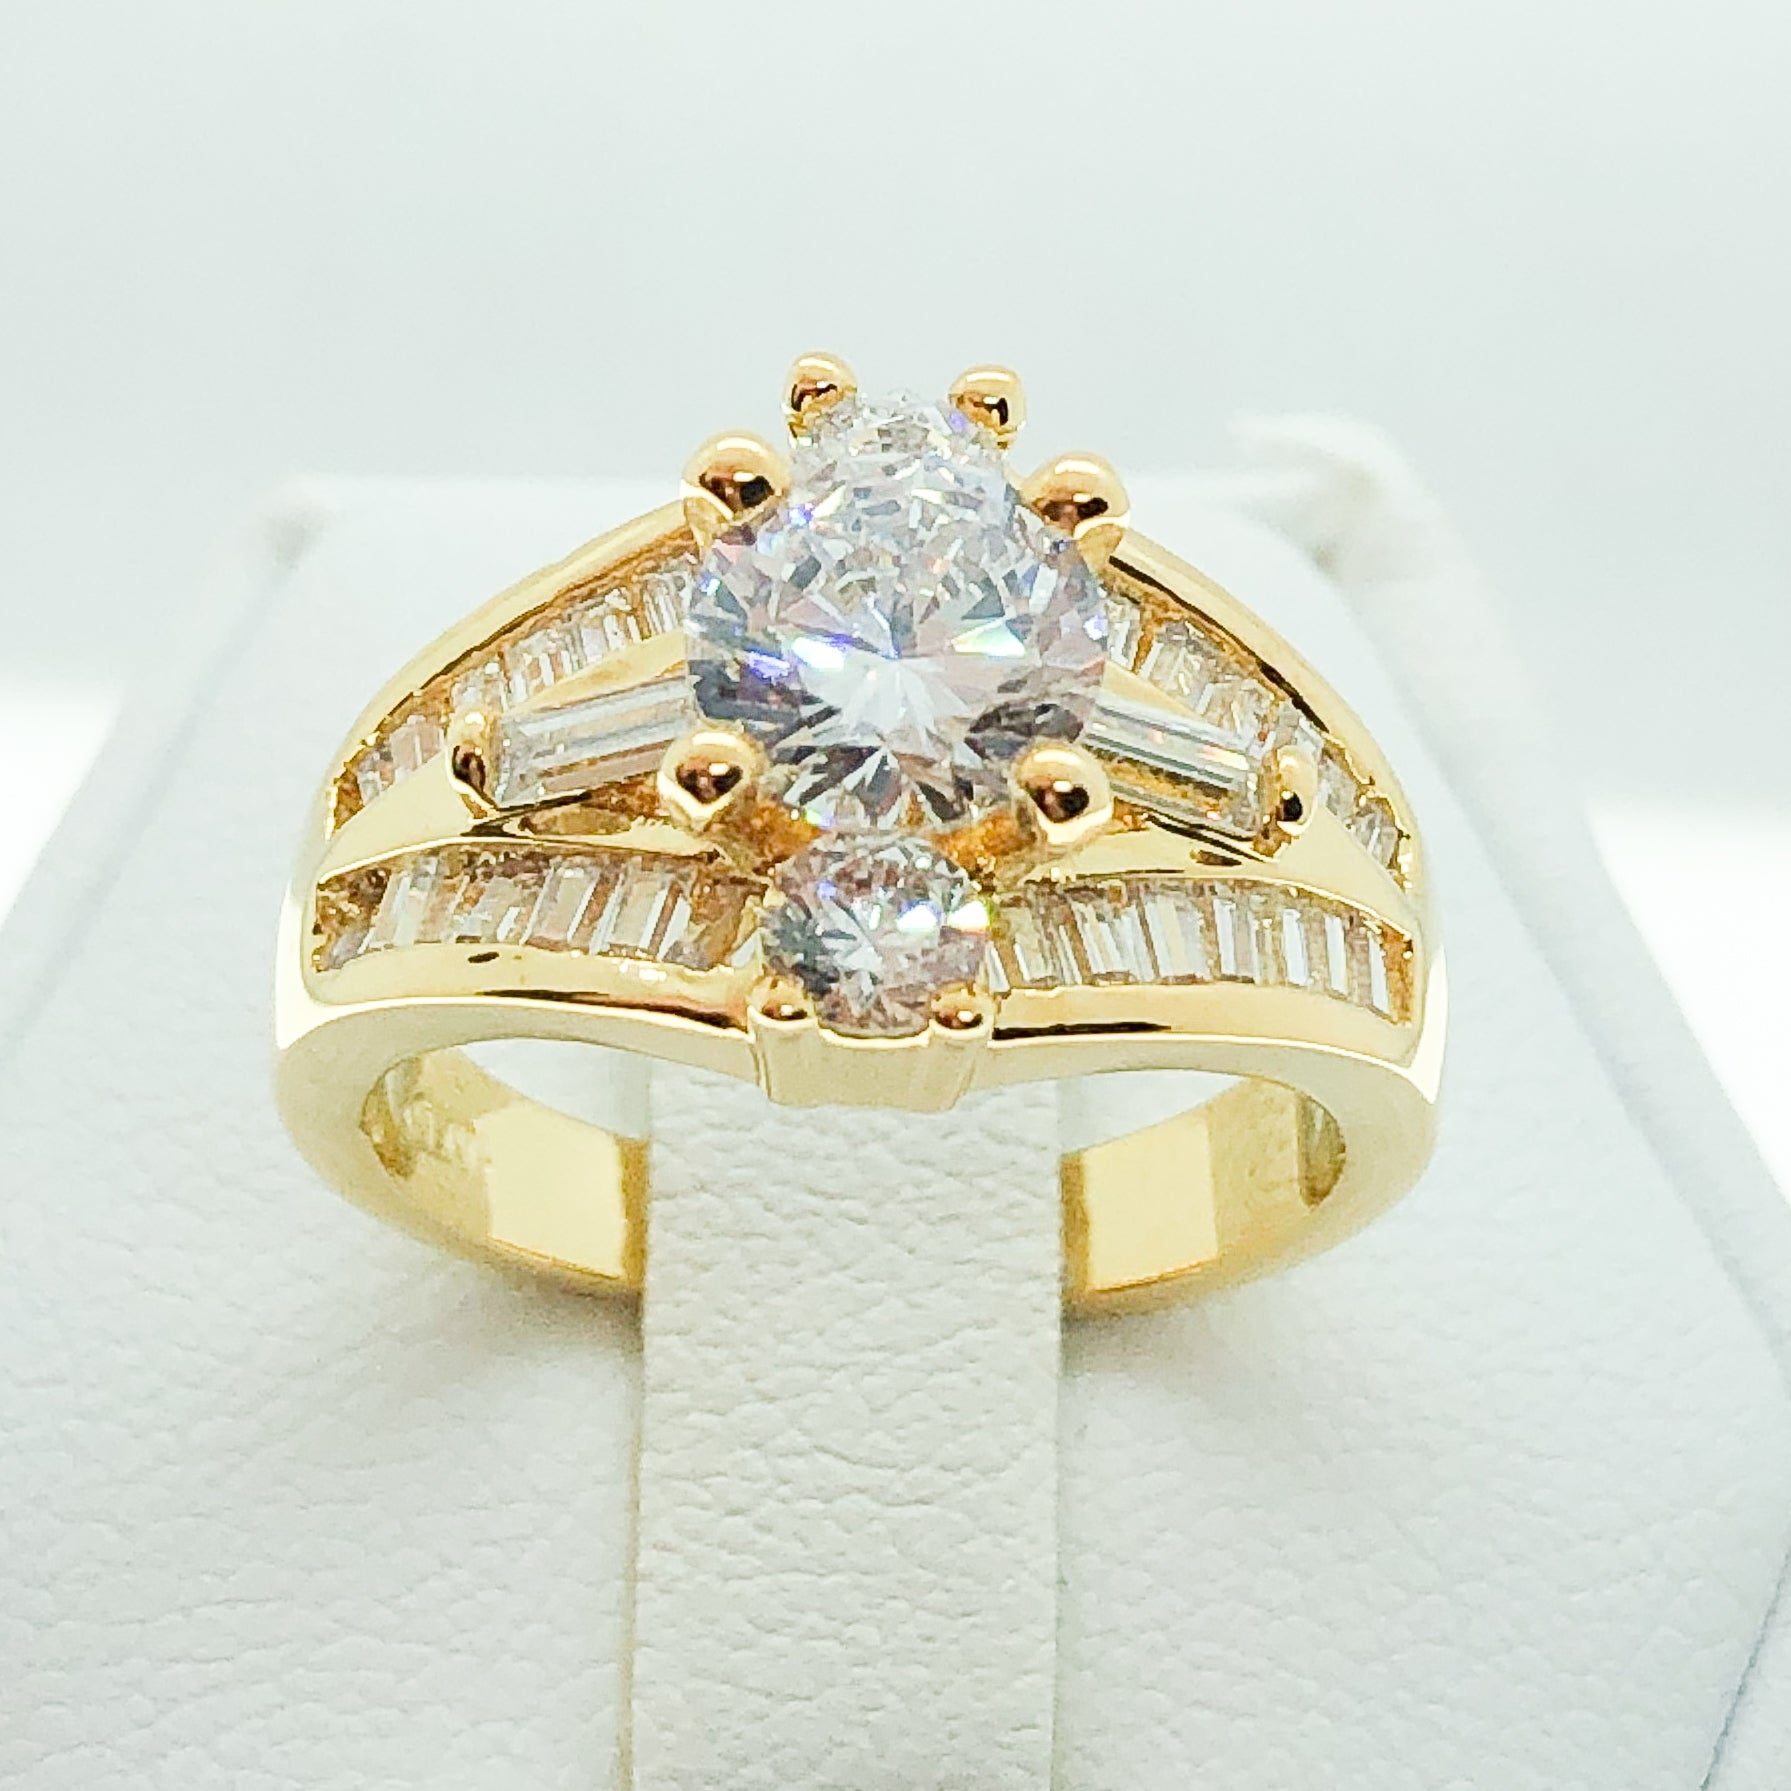 ID:R7897 Women Jewelry 18K Yellow Gold GF Vintage Comfortable Everyday Wear Clear Stones Cluster Ring